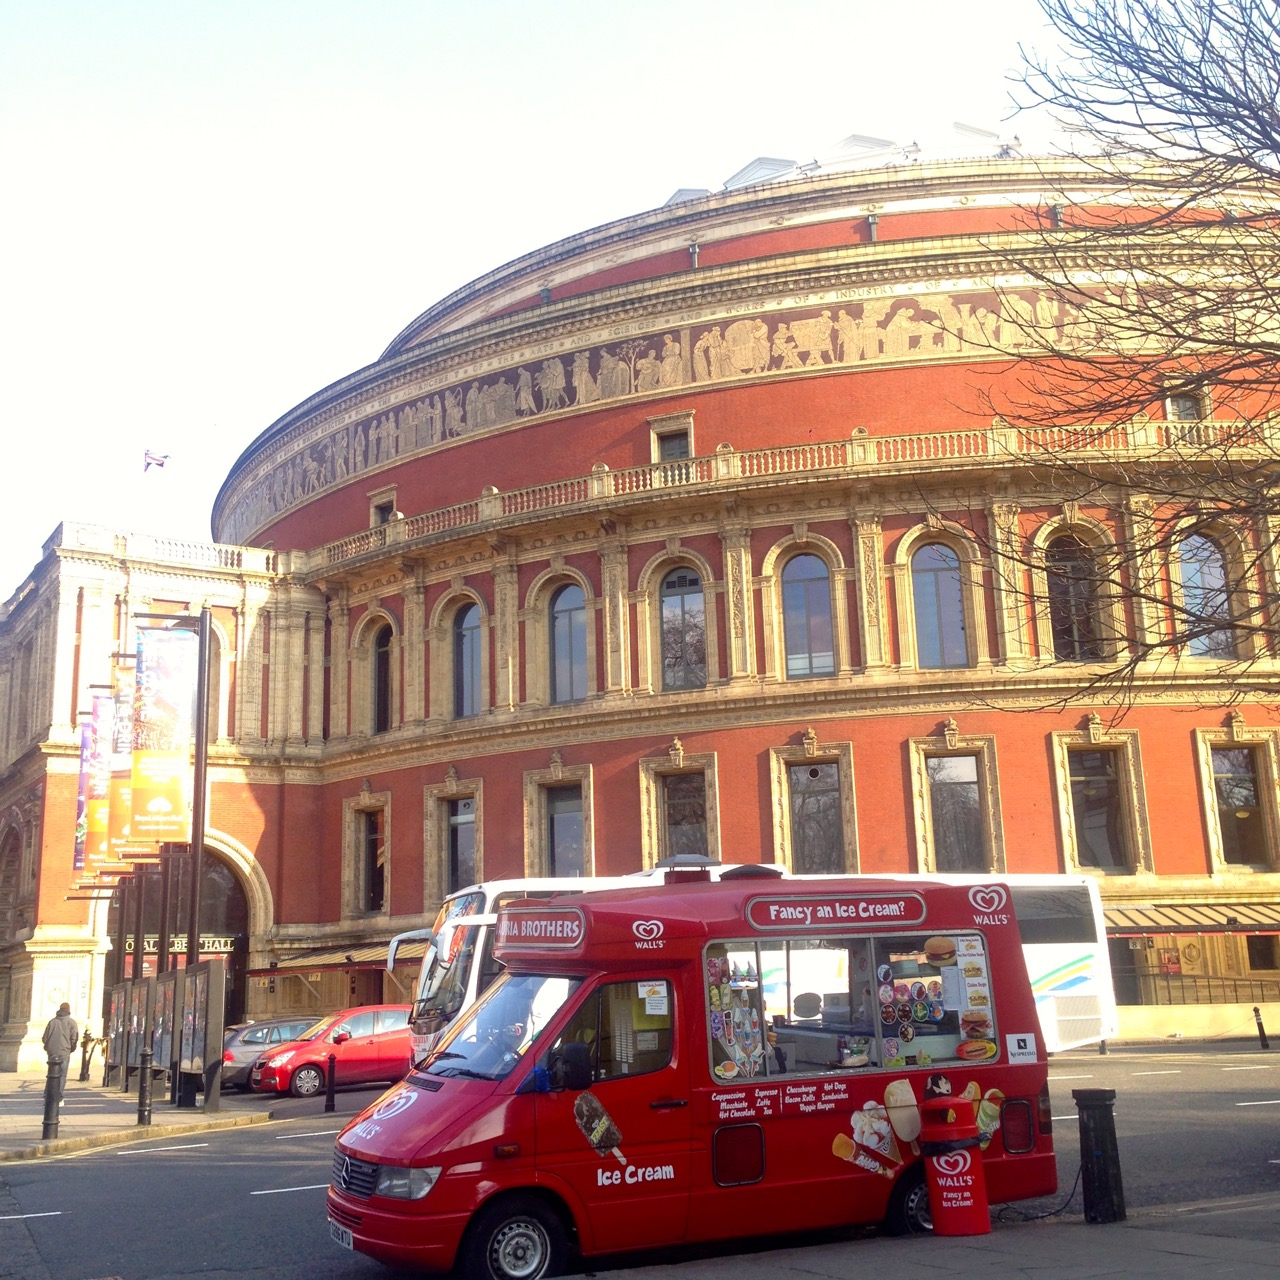 Passei no Royal Albert Hall!